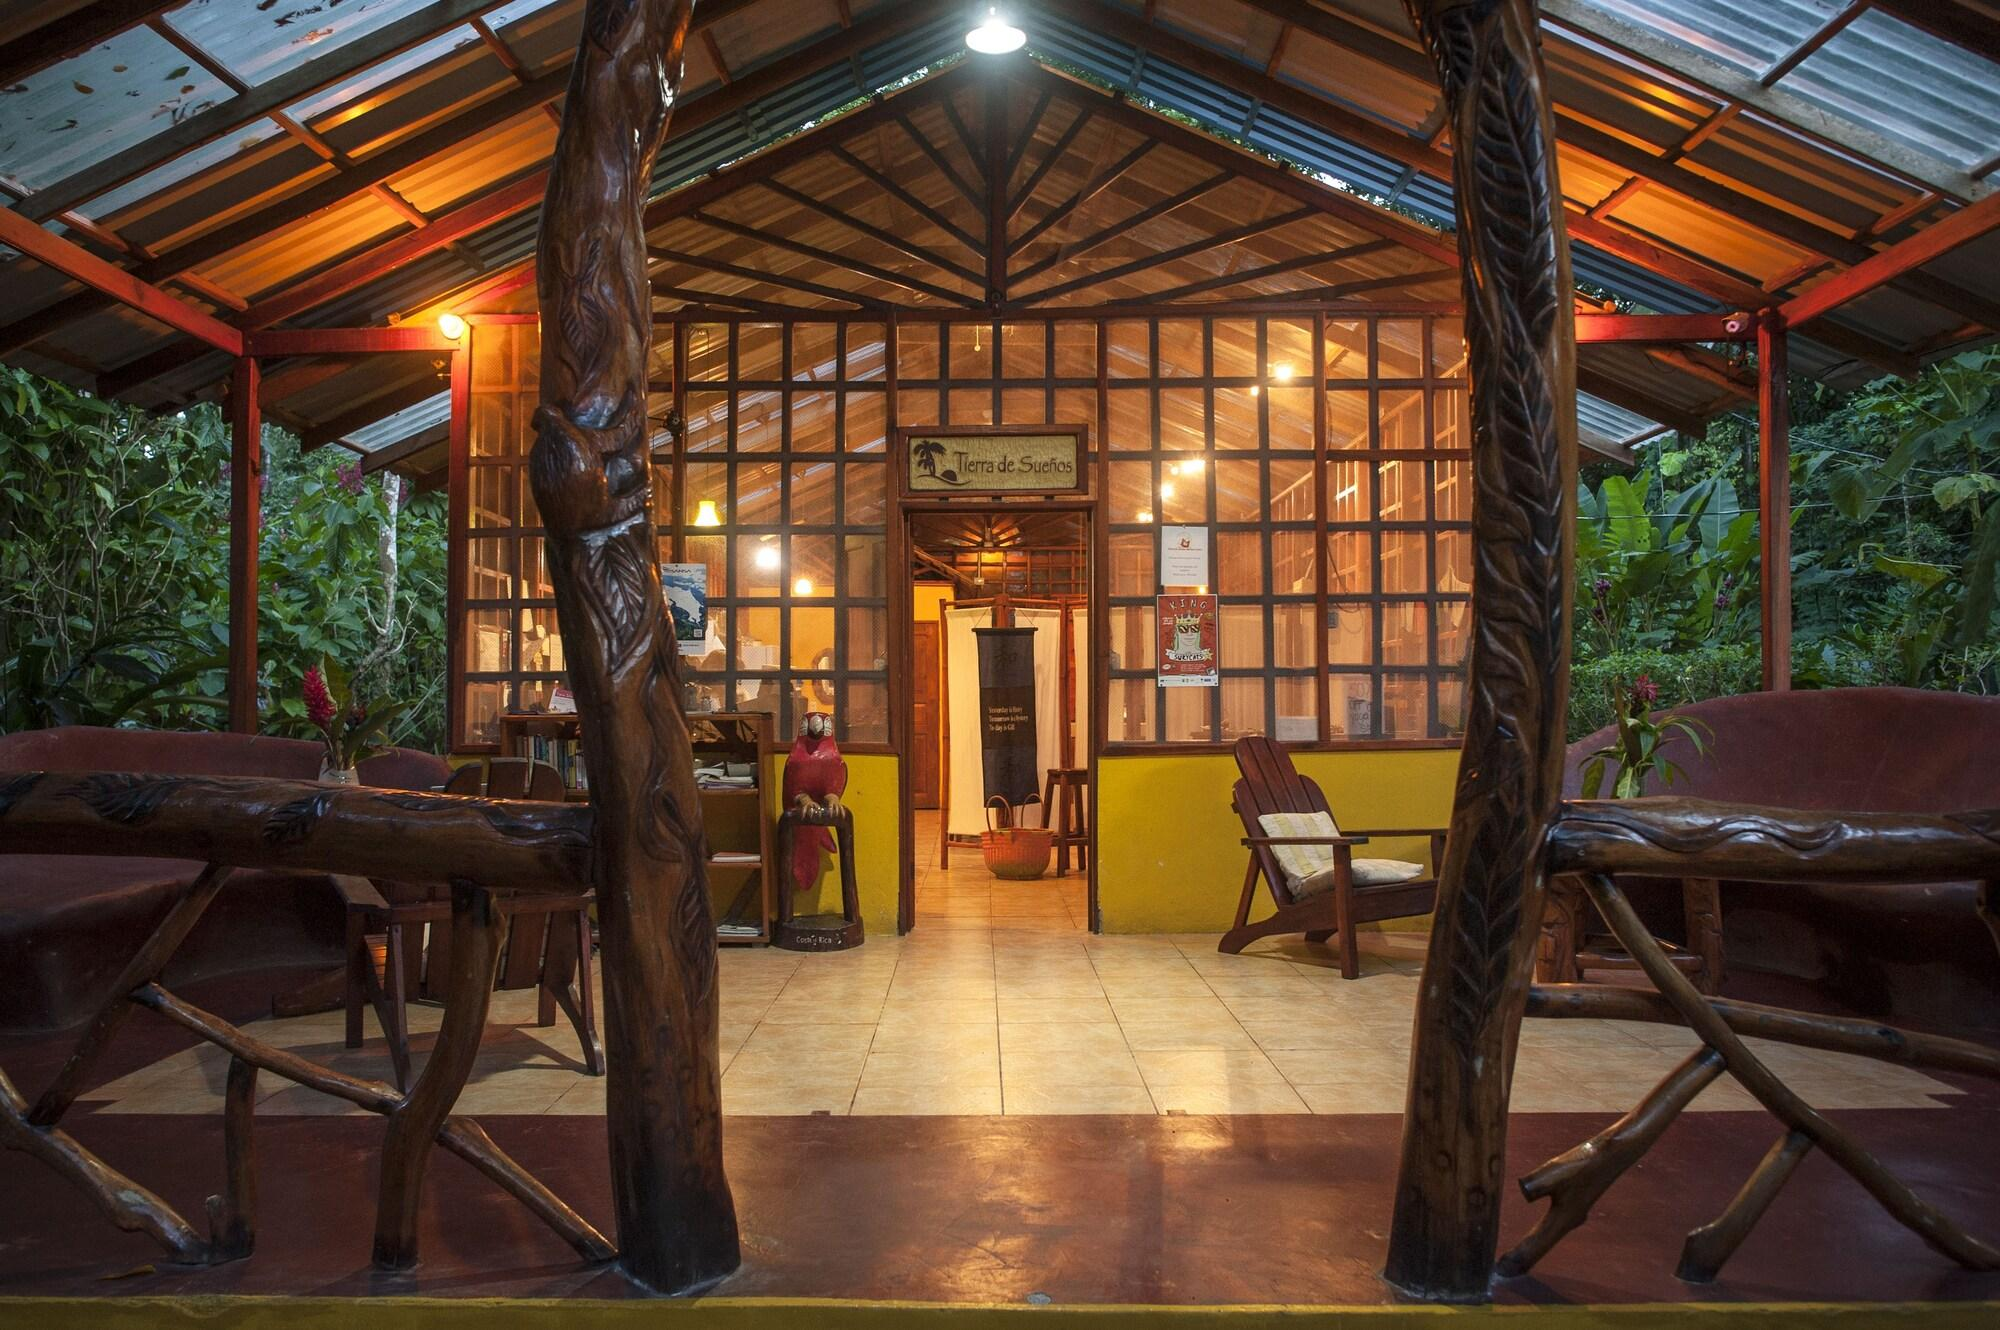 Tierra de Sueños Lodge & Wellness Center